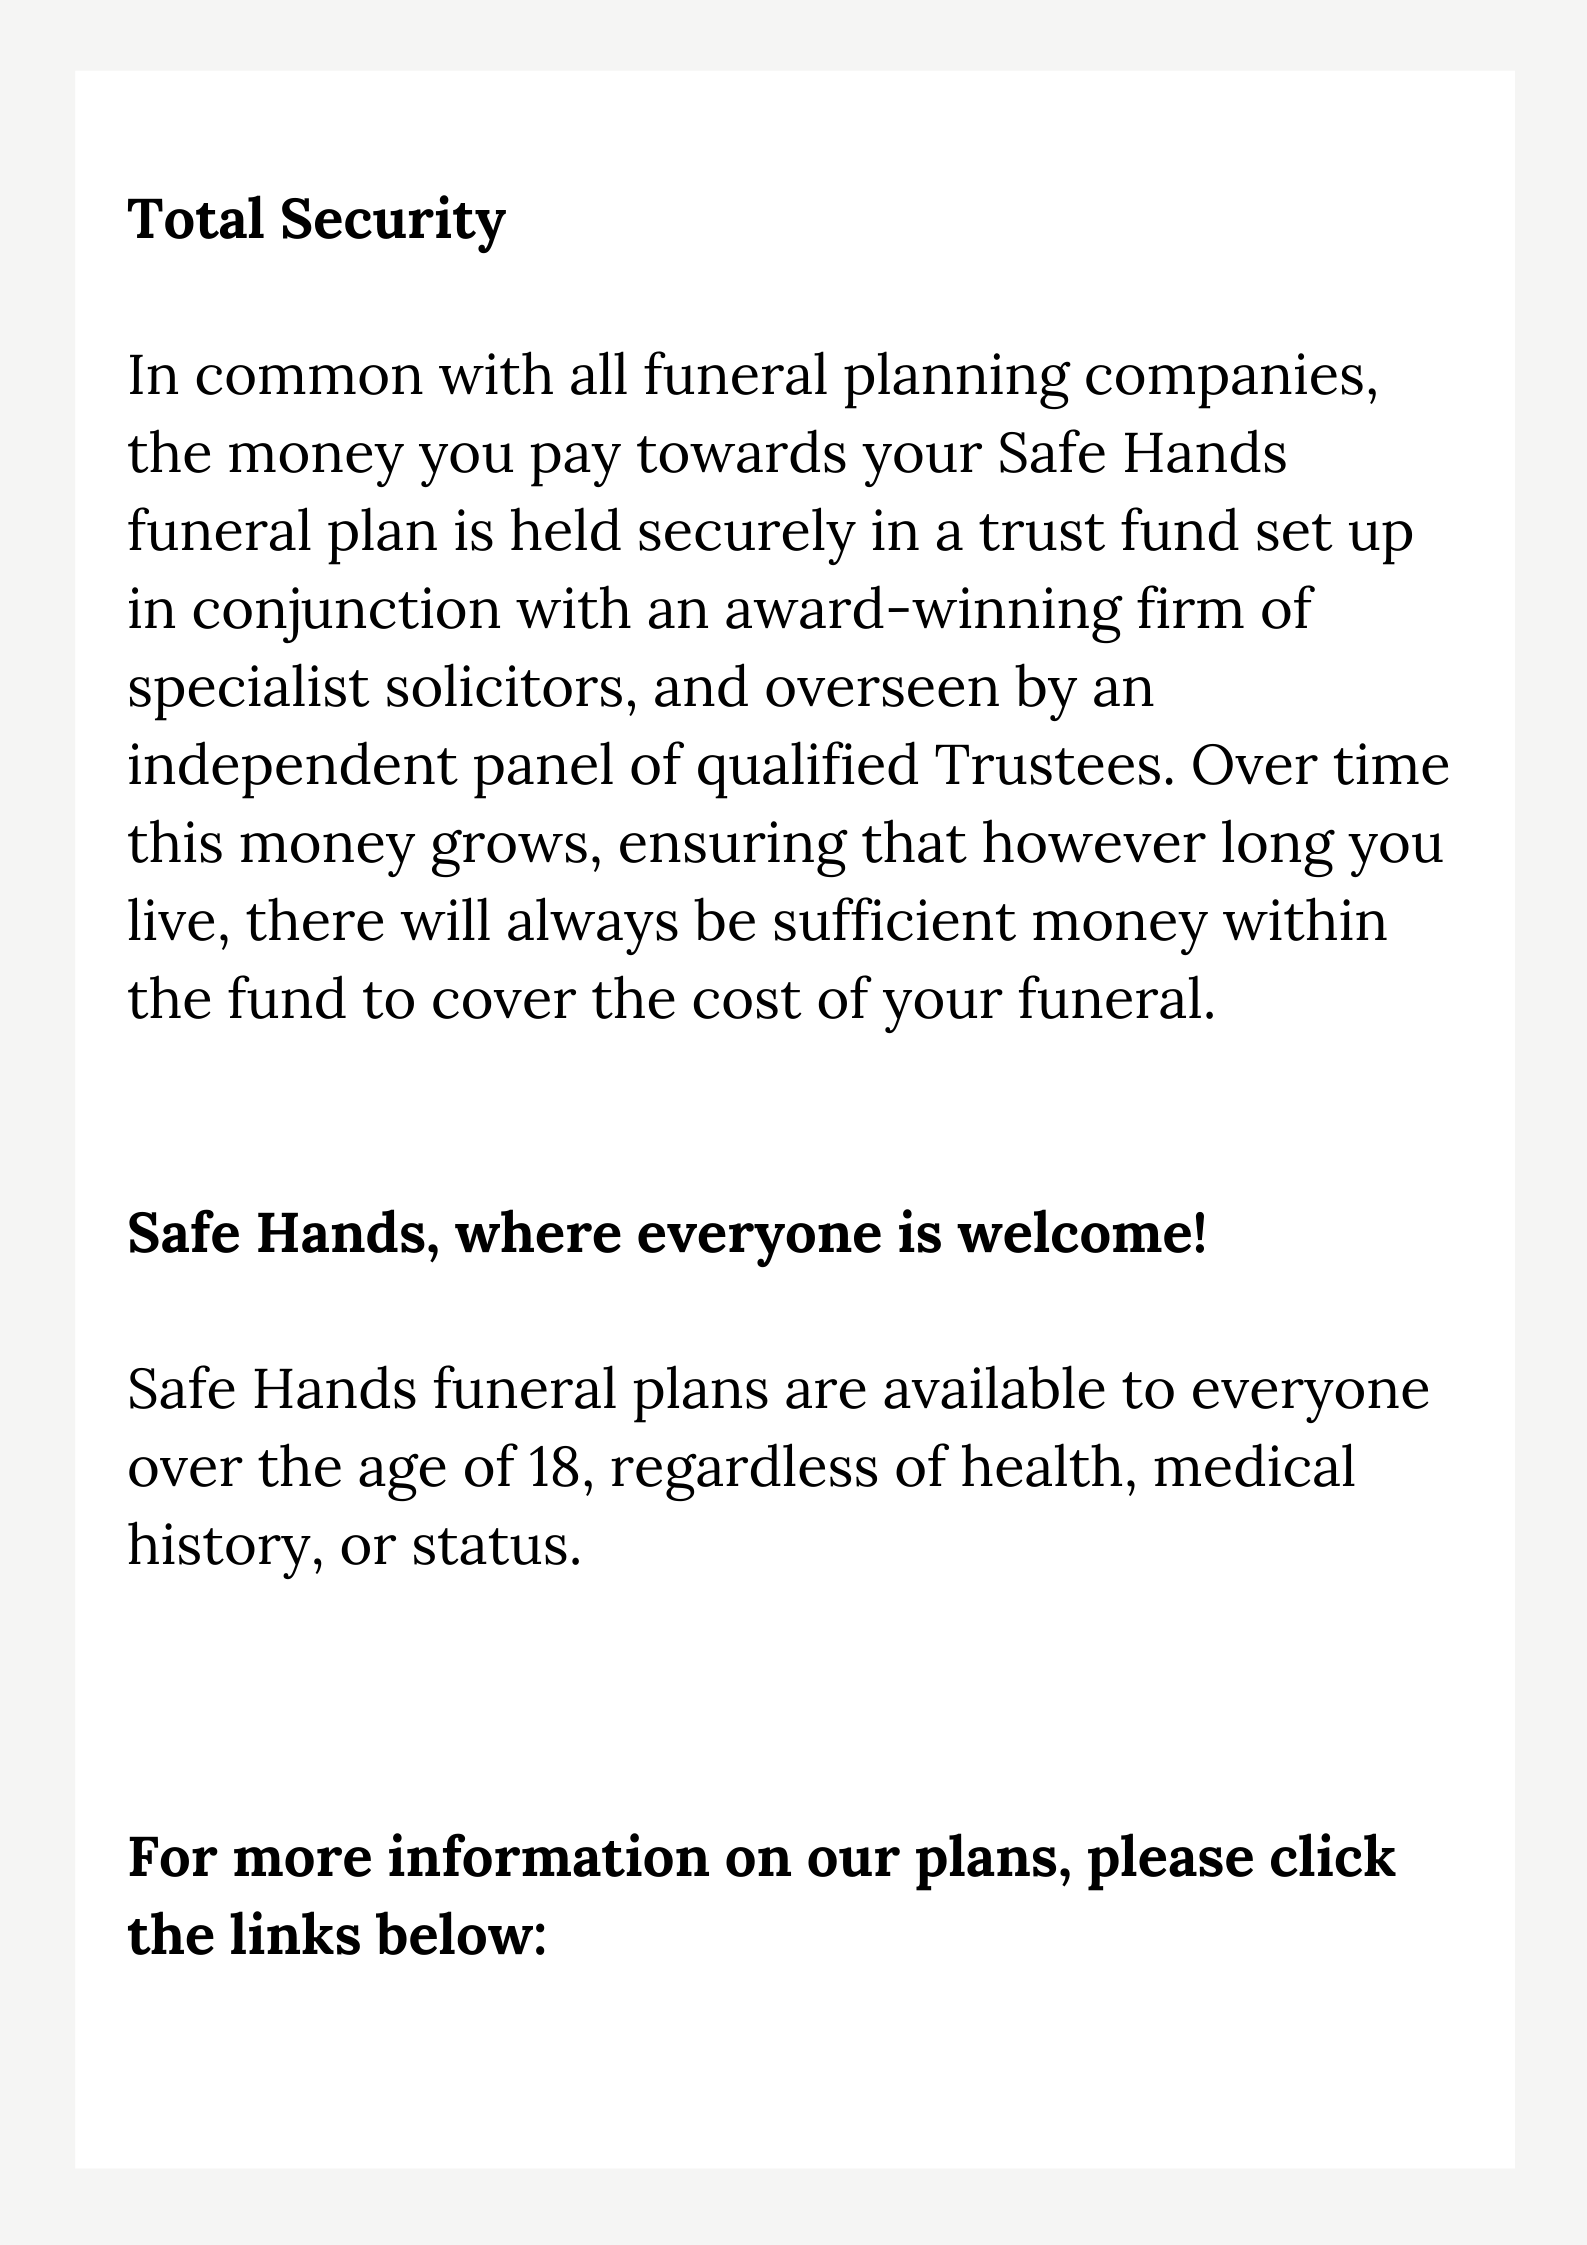 funeral plans page 2